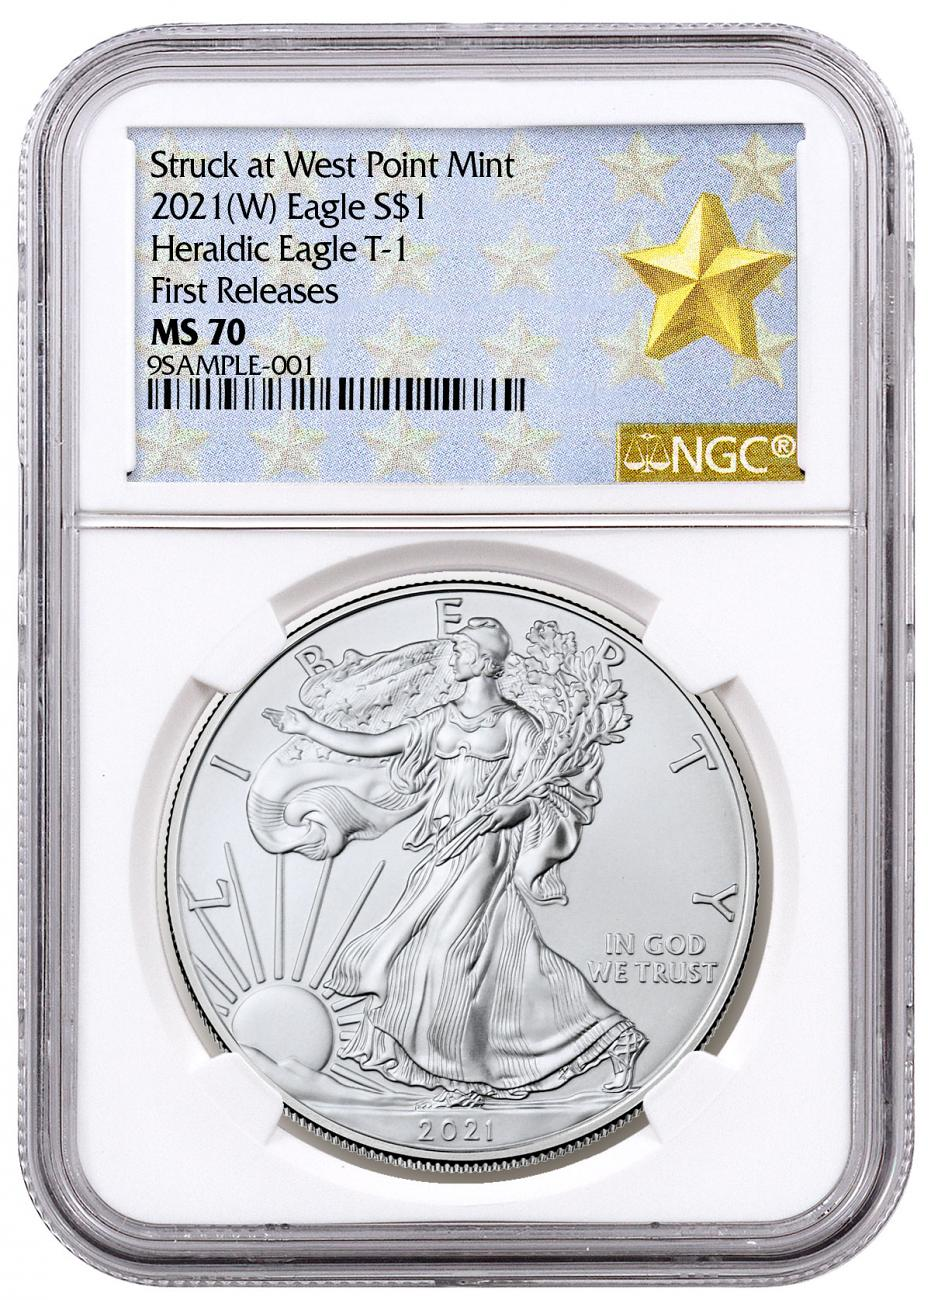 2021-(W) American Silver Eagle Struck at West Point Mint NGC MS70 FR West Point Gold Star Label